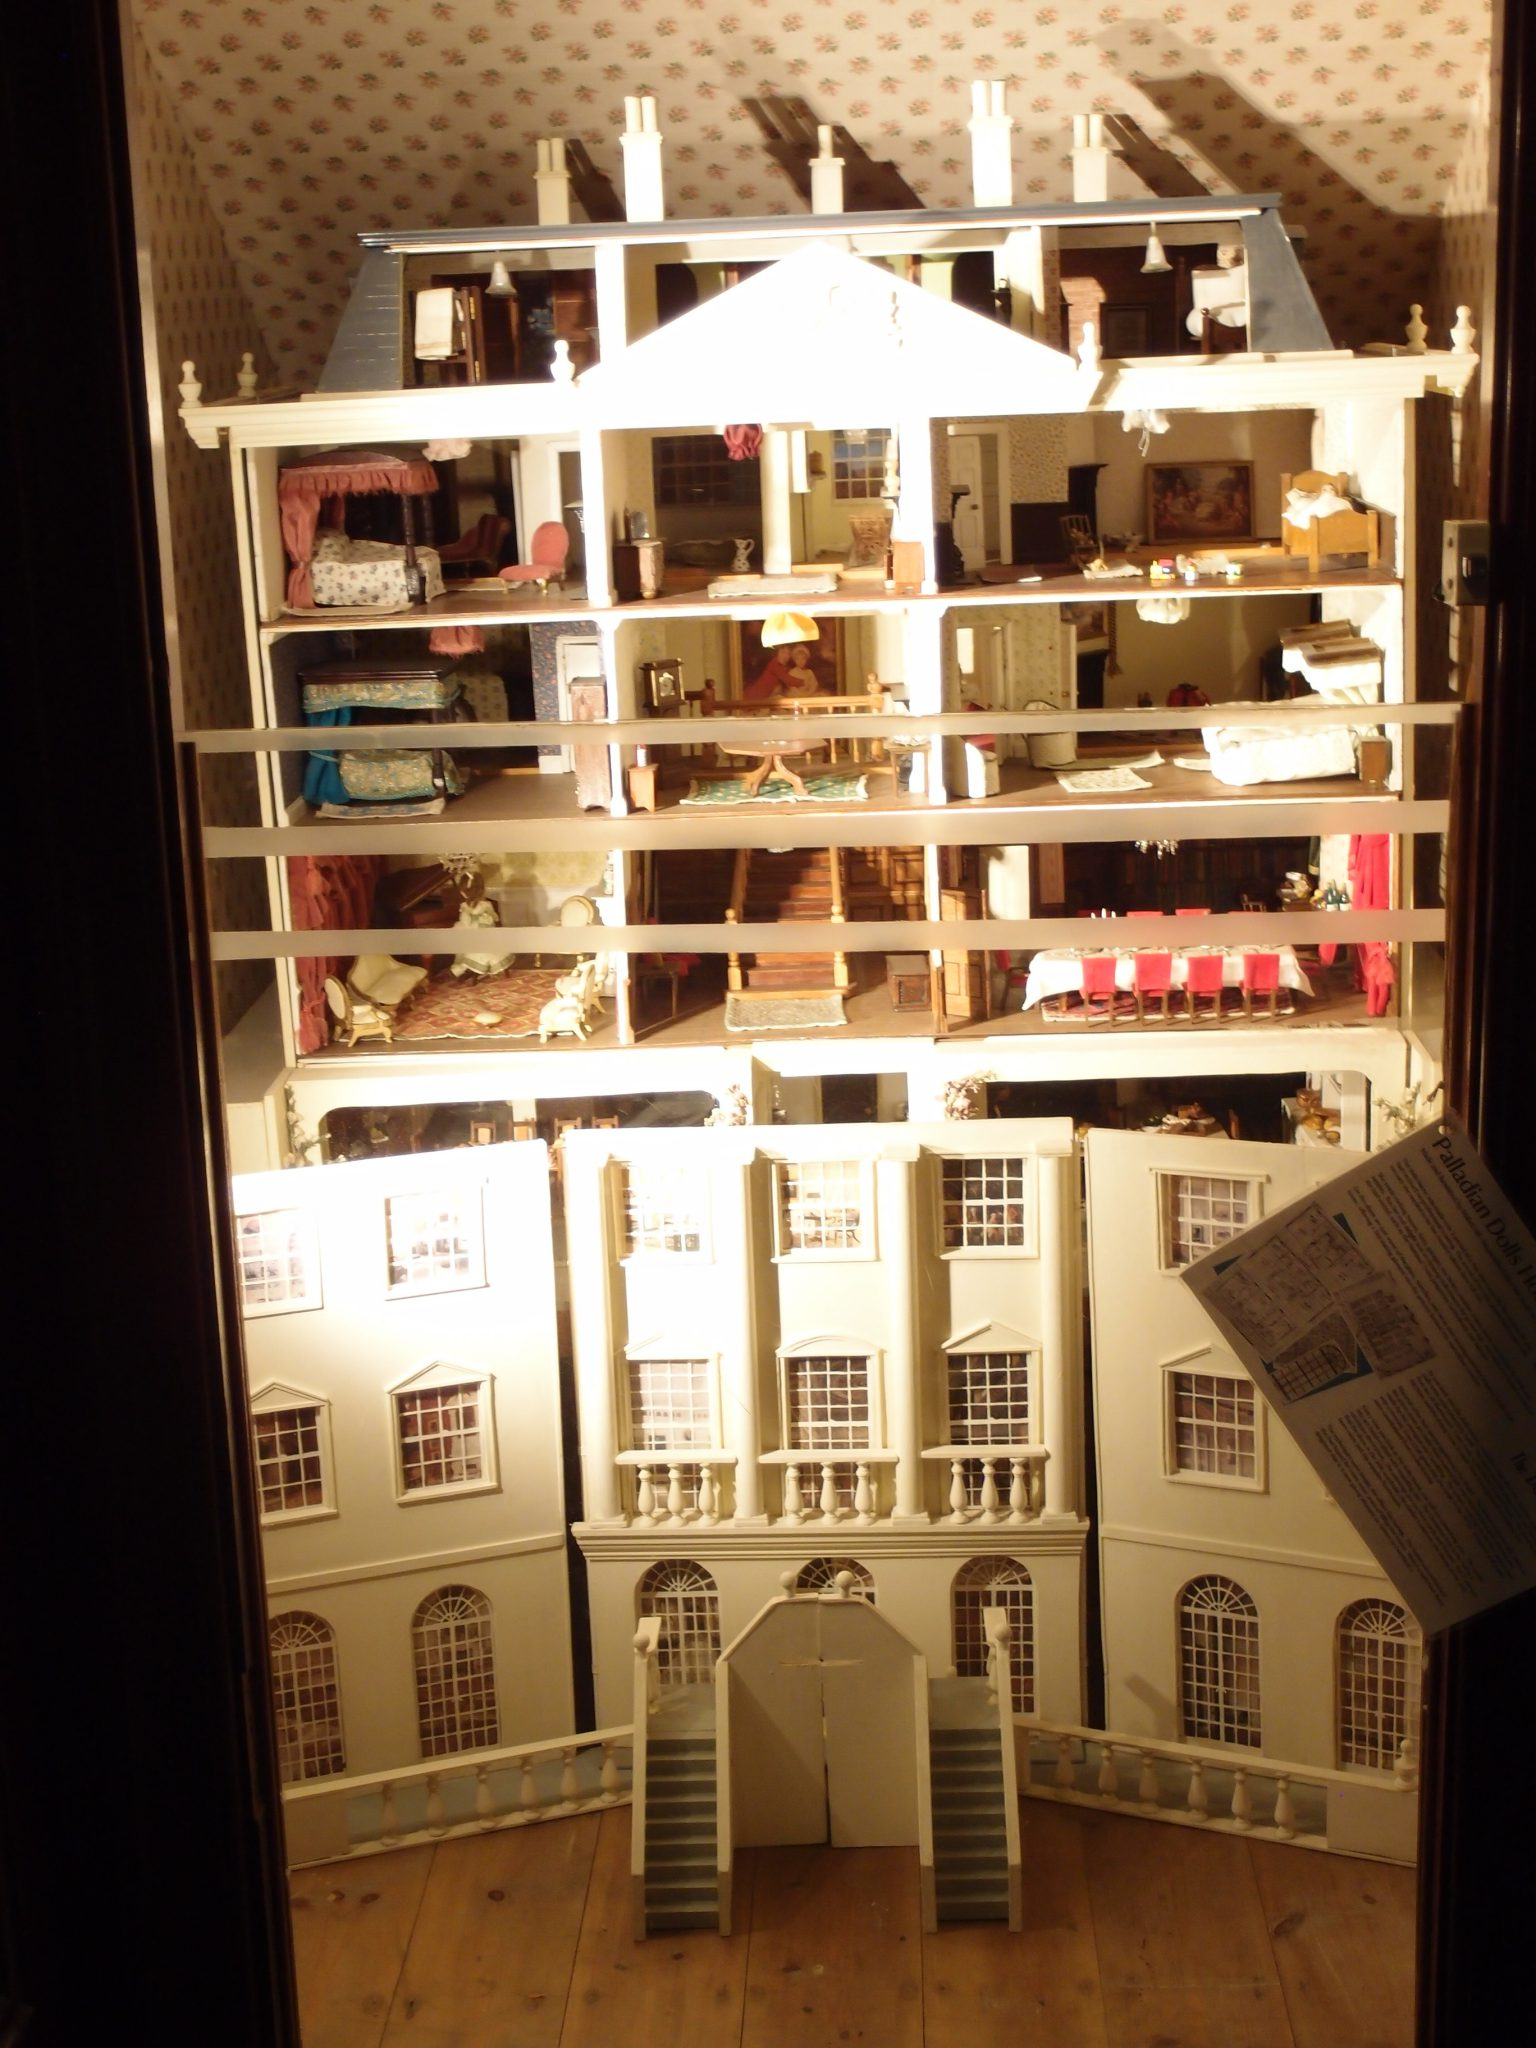 Hidden under the stairs is a room that's full of the dolls' houses which belonged to the Overbeck family.